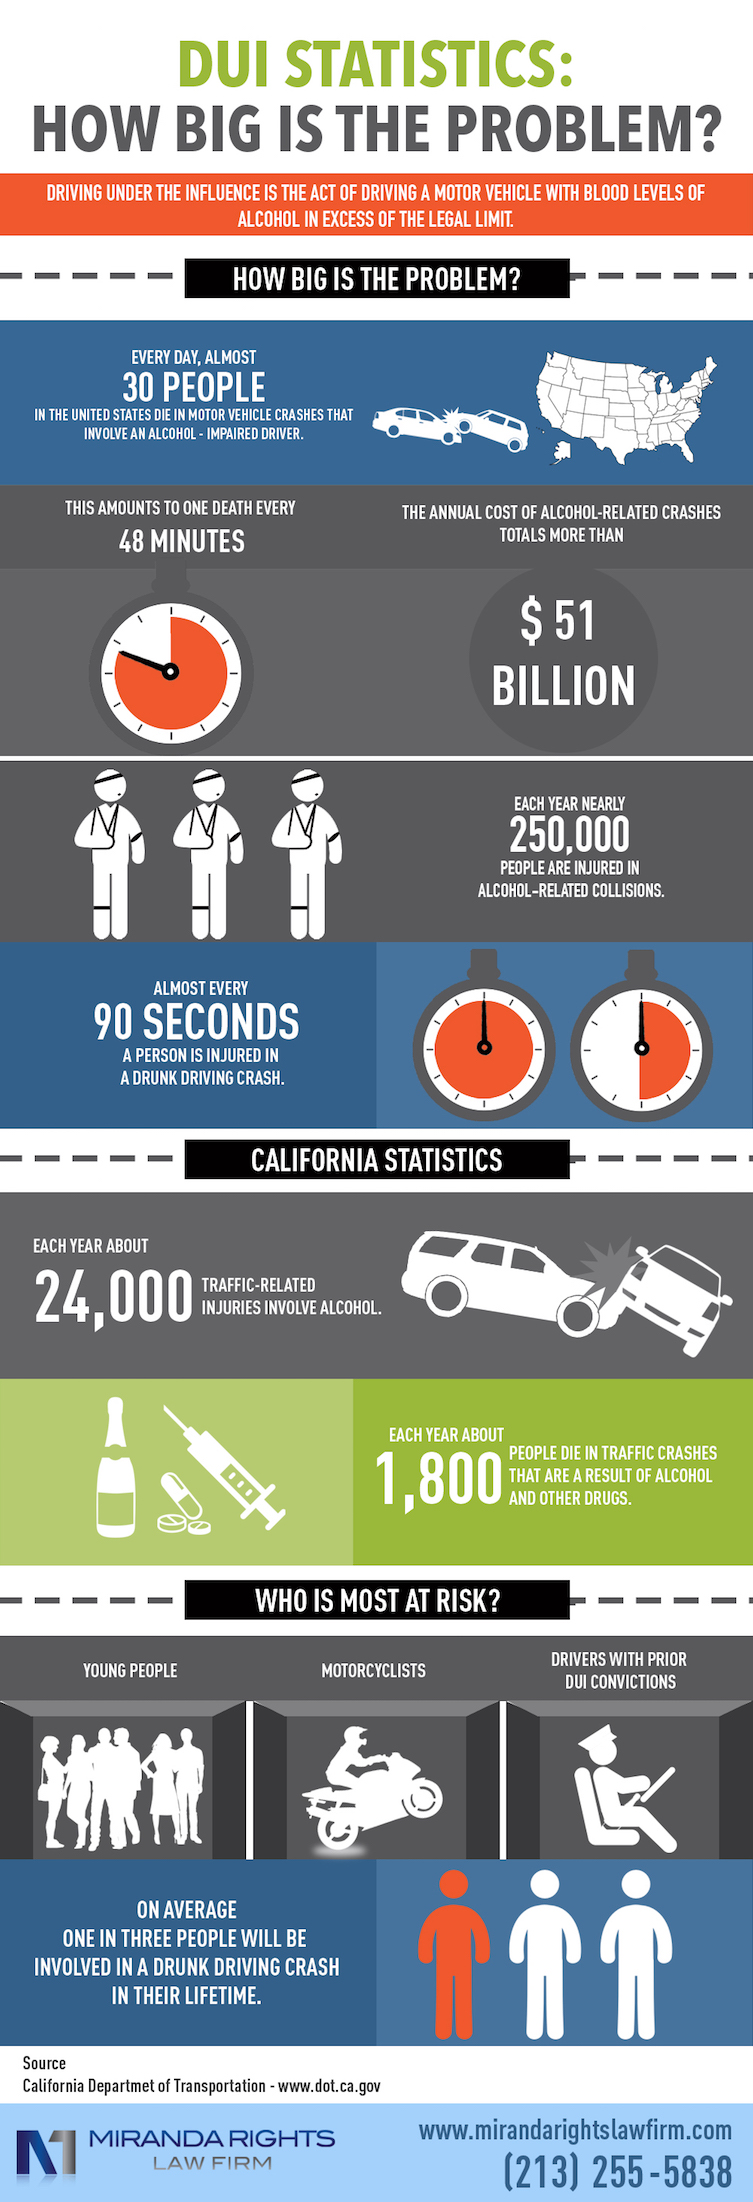 DUI Statistics How Big Is The Problem